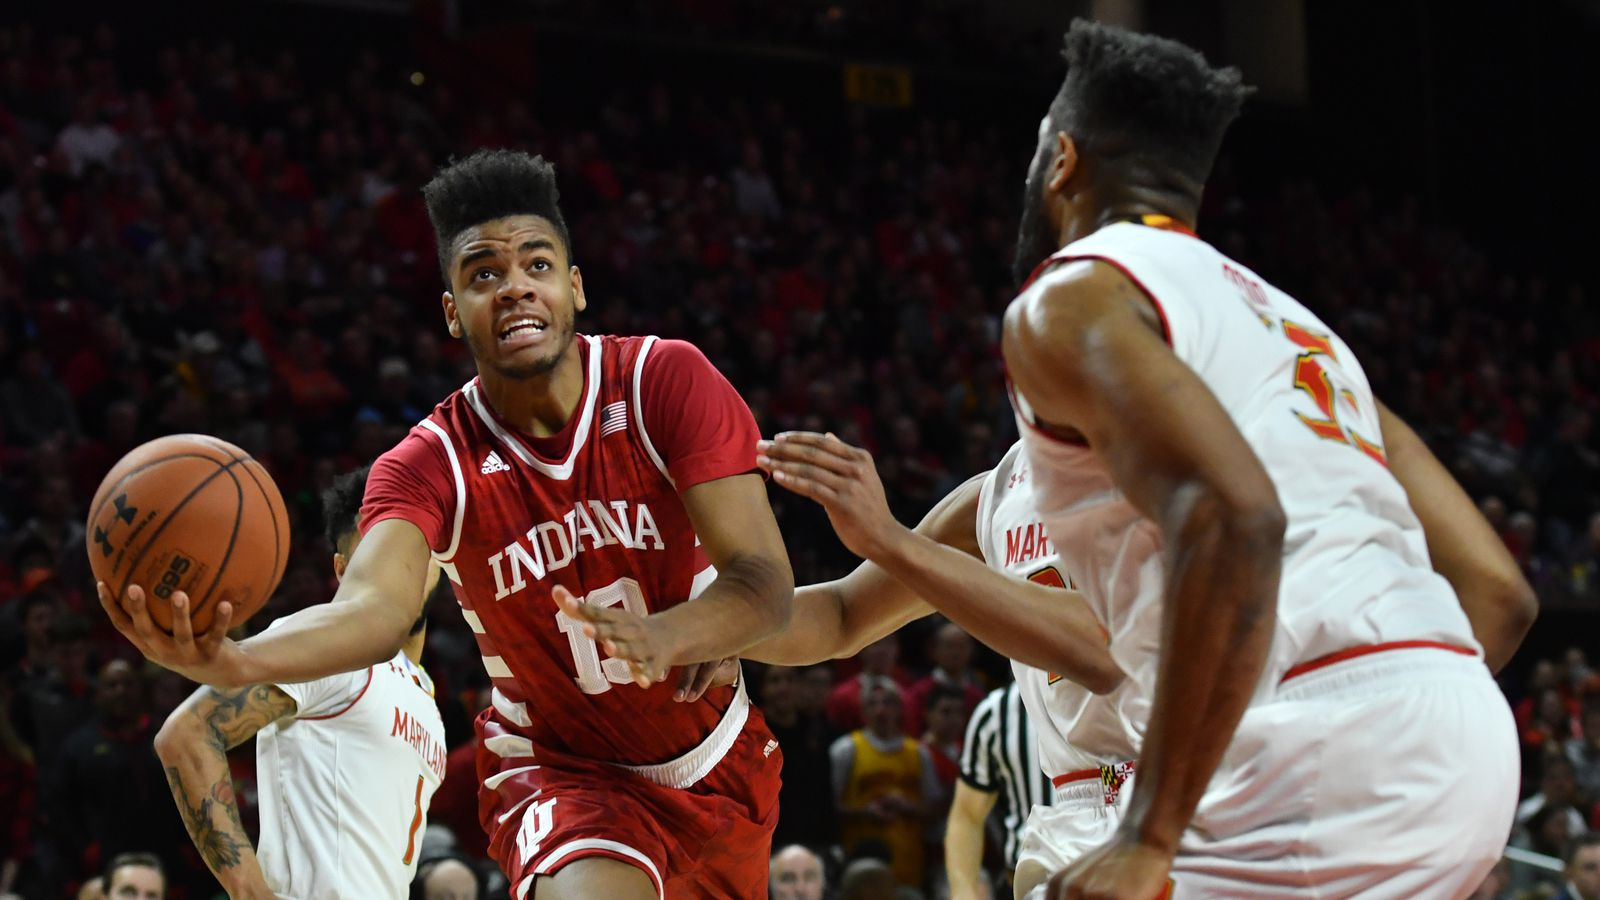 Indiana Hoosiers College Basketball - Indiana News, Scores ...